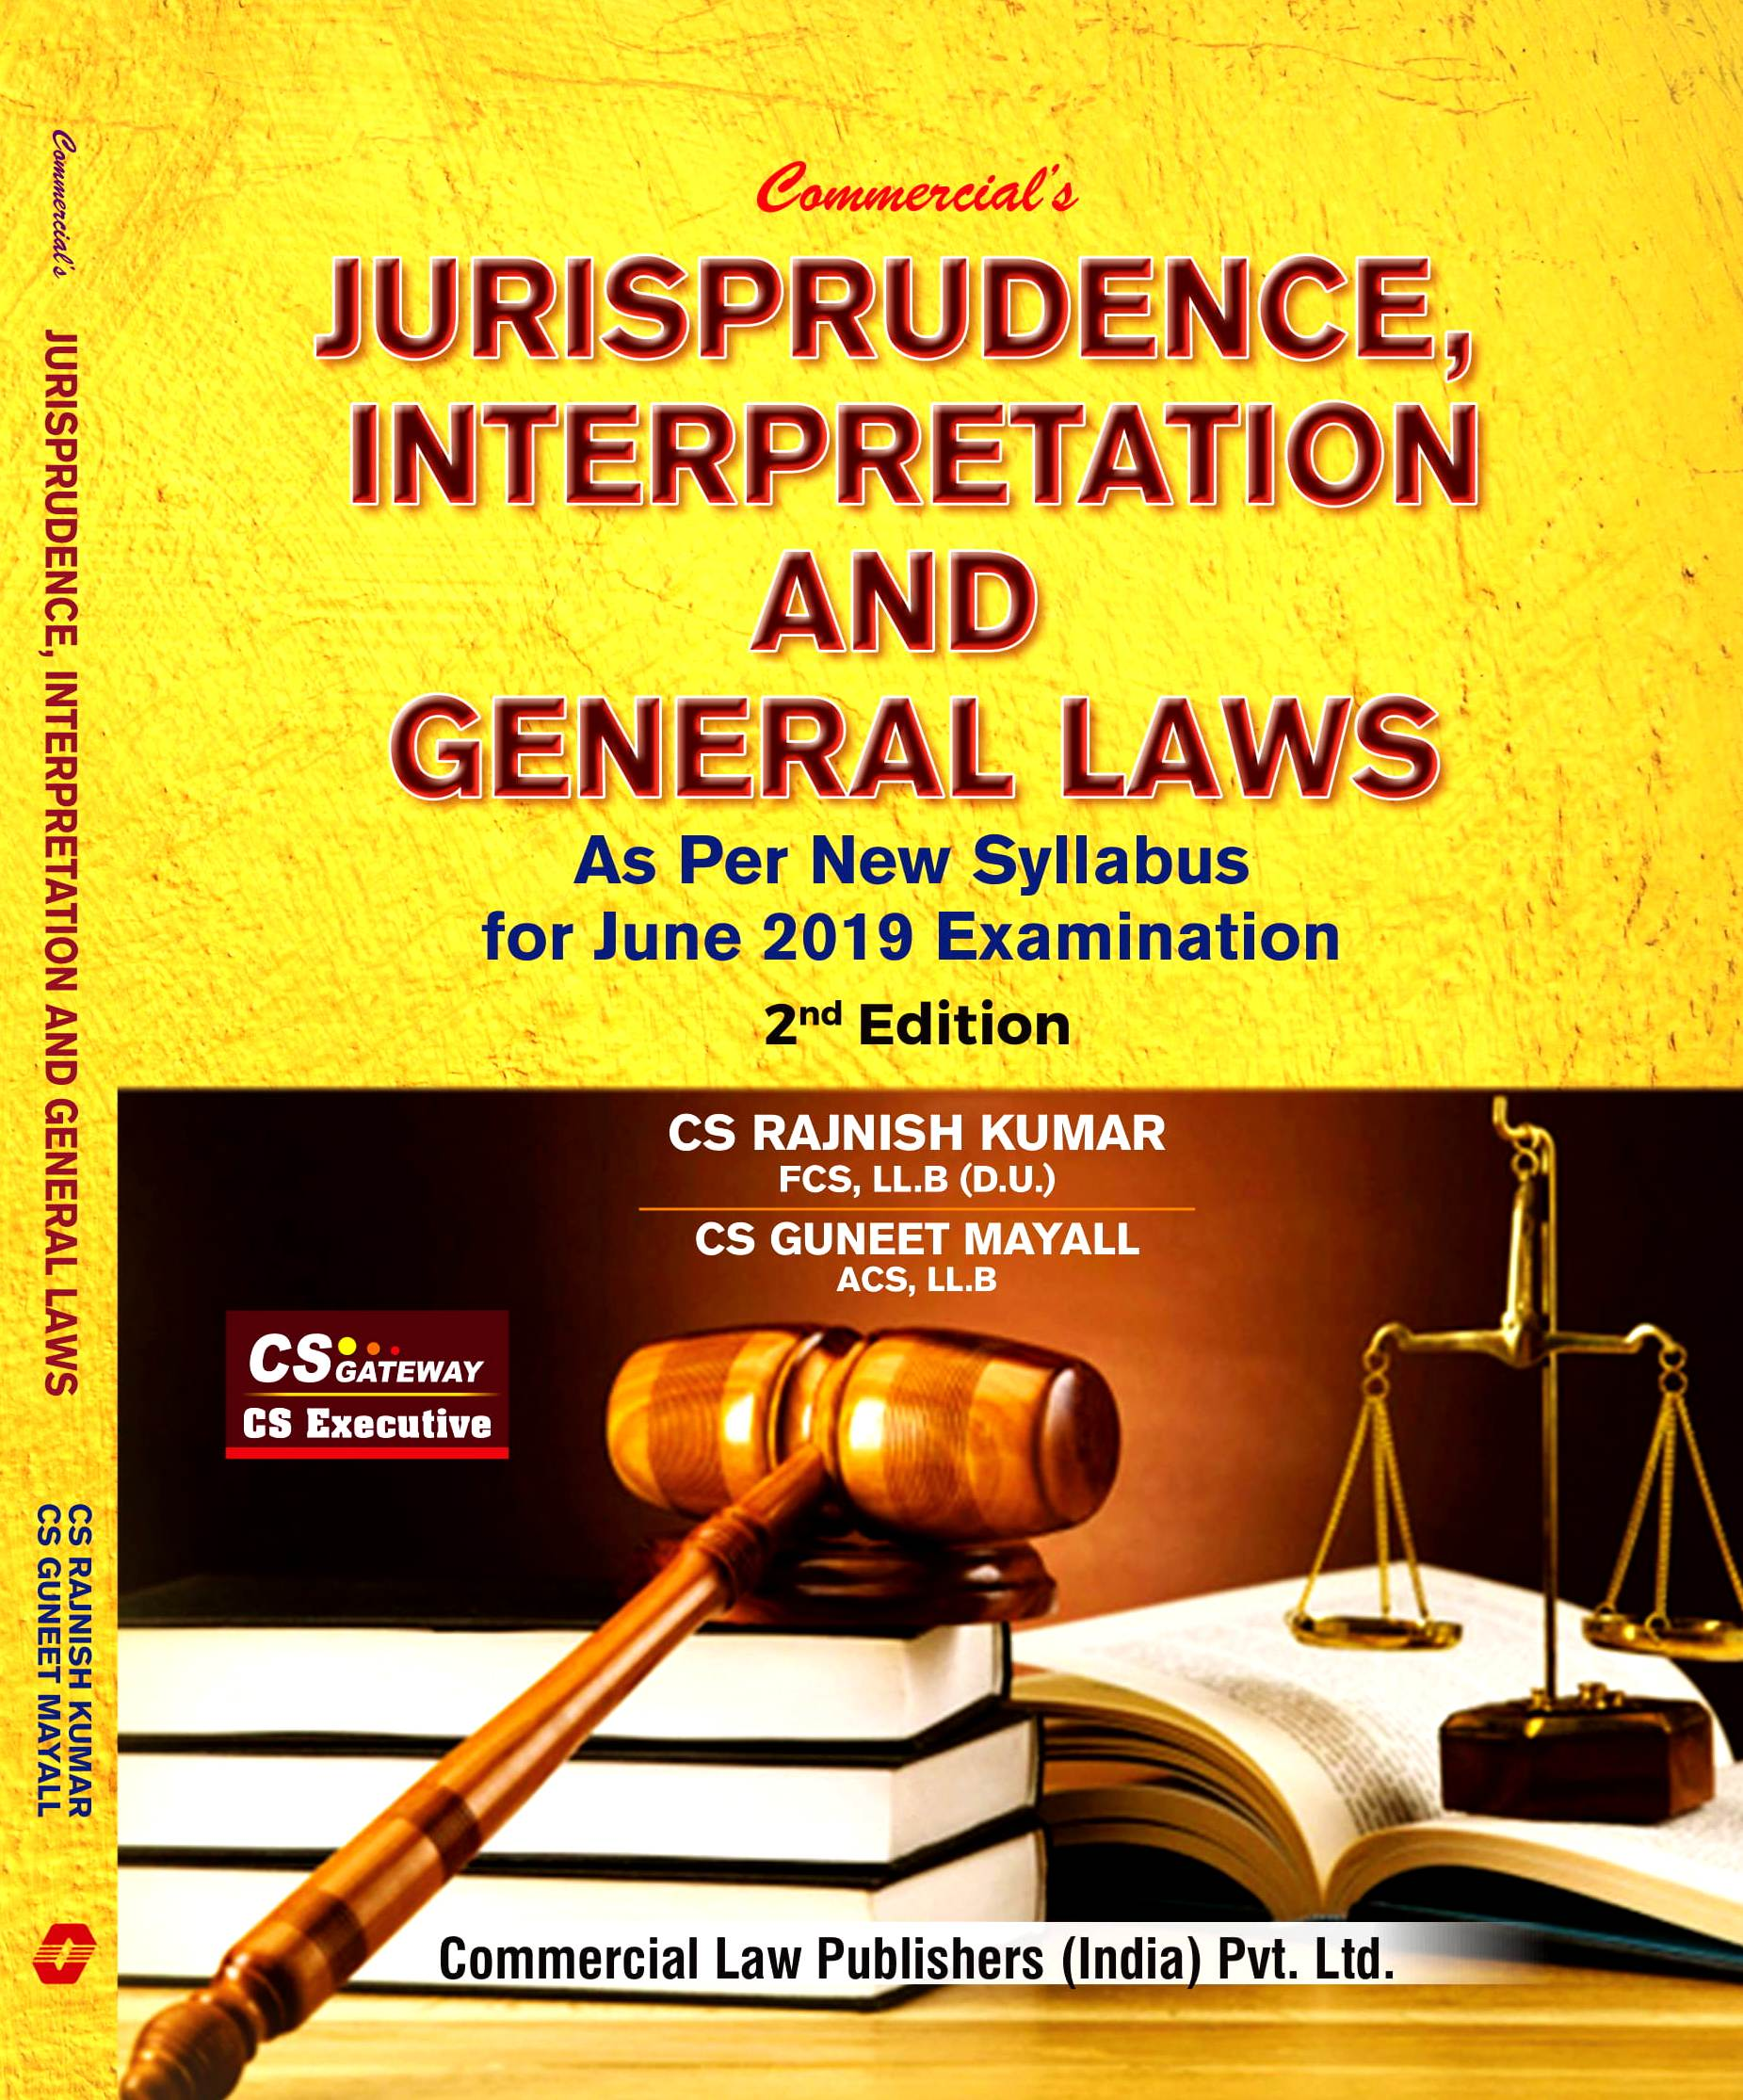 Commercial CS Executive Jurisprudence, Interpretation & General Laws New Syllabus By Rajnish Kumar , Guneet Mayall Applicable for June 2019 Exam